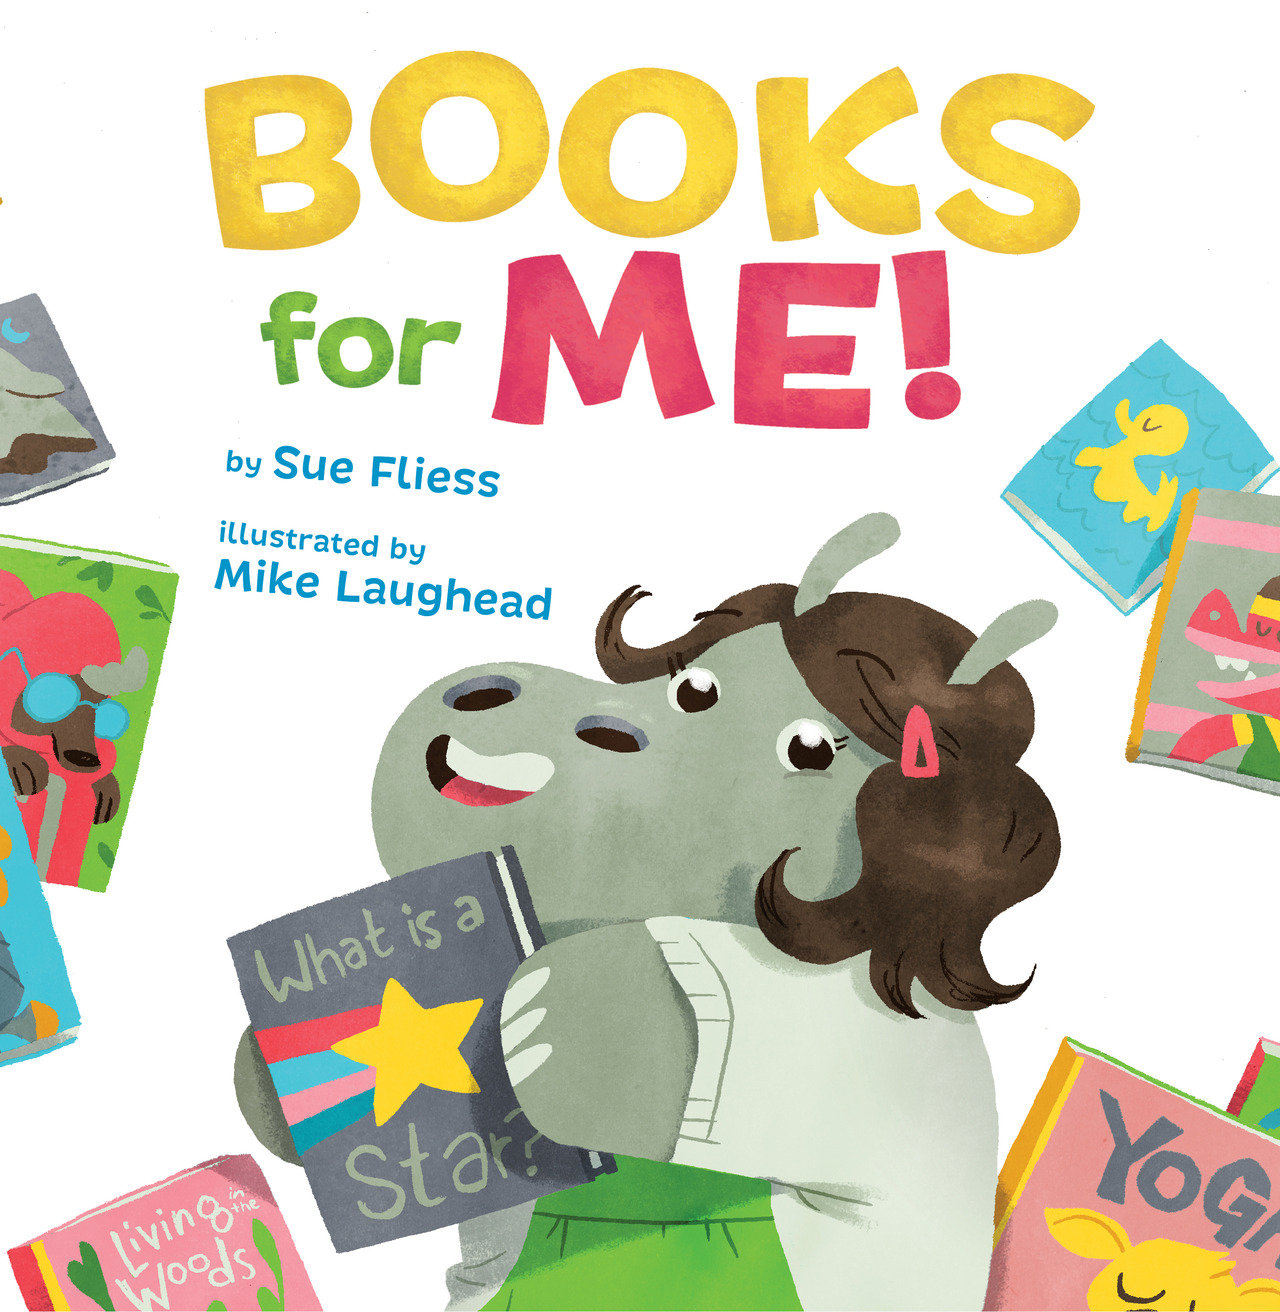 Fliess booksforme hires frontcover rgb final